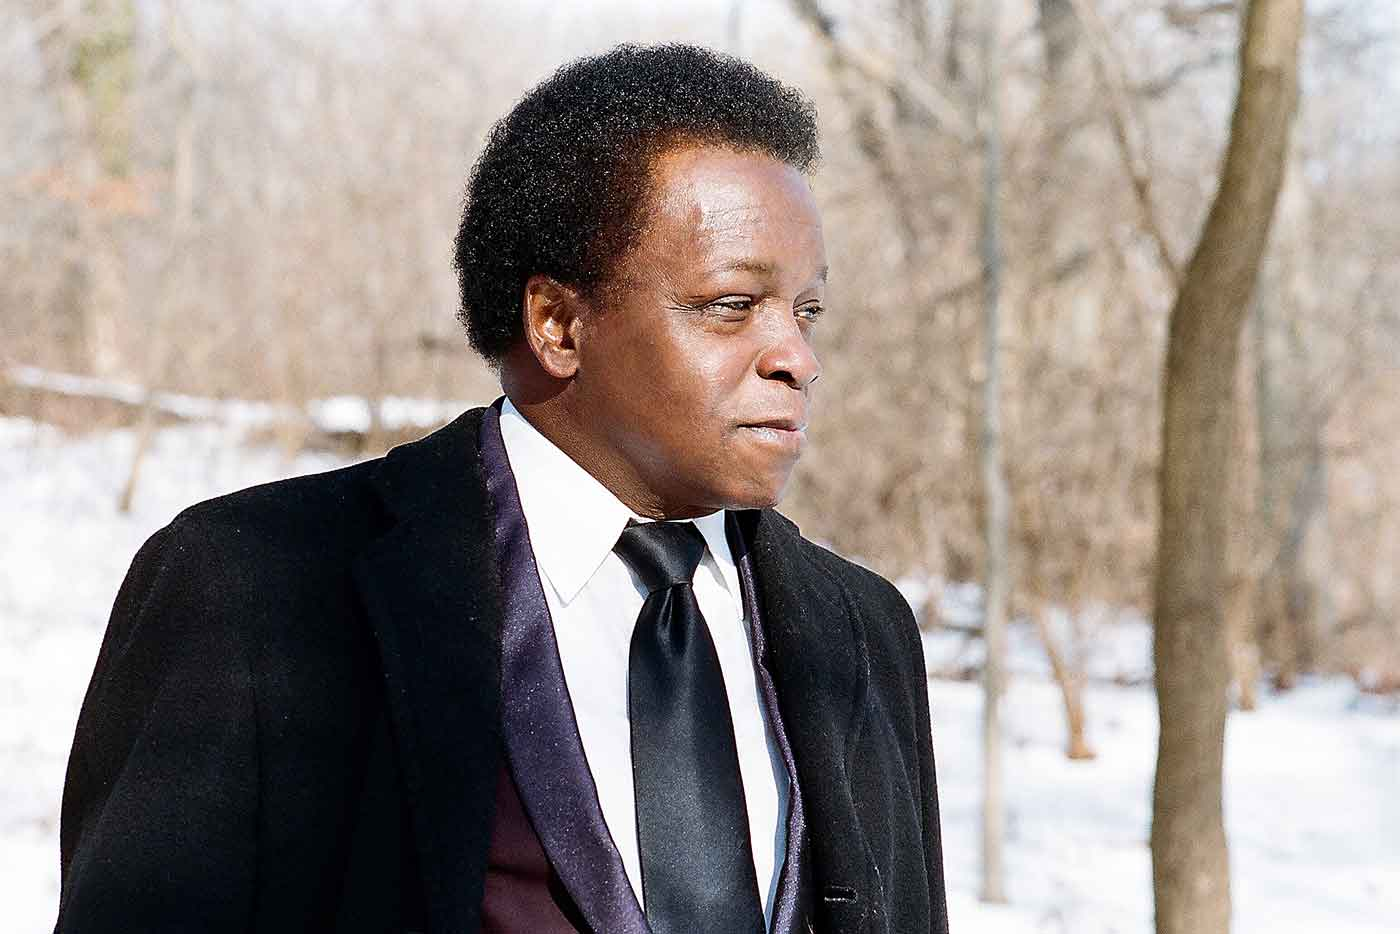 Los discos de mi vida por Lee Fields